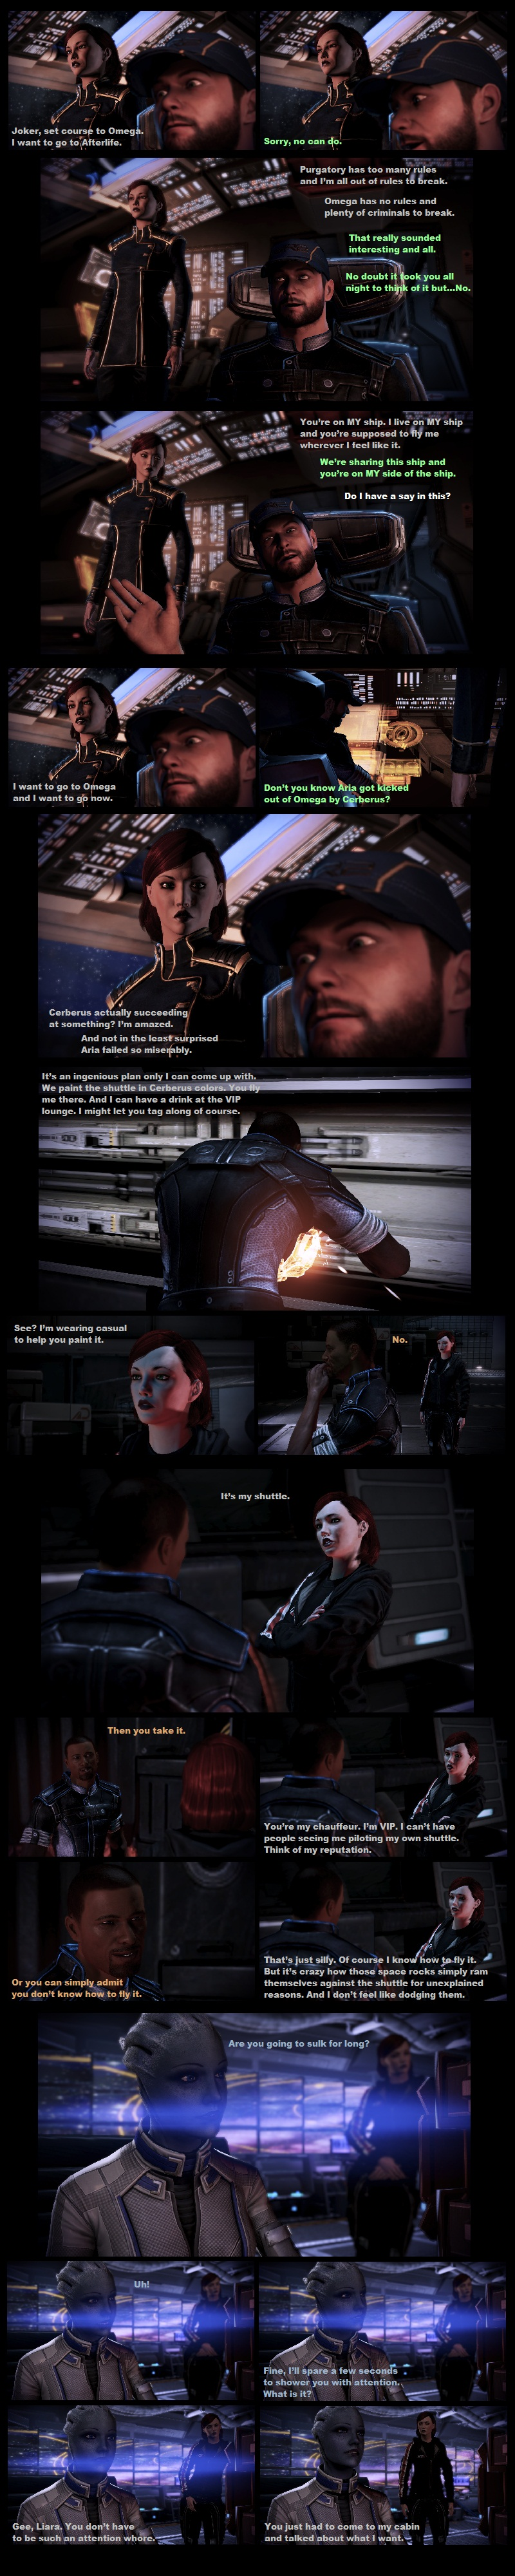 Mass effect 3 Detour - P121 by Pomponorium